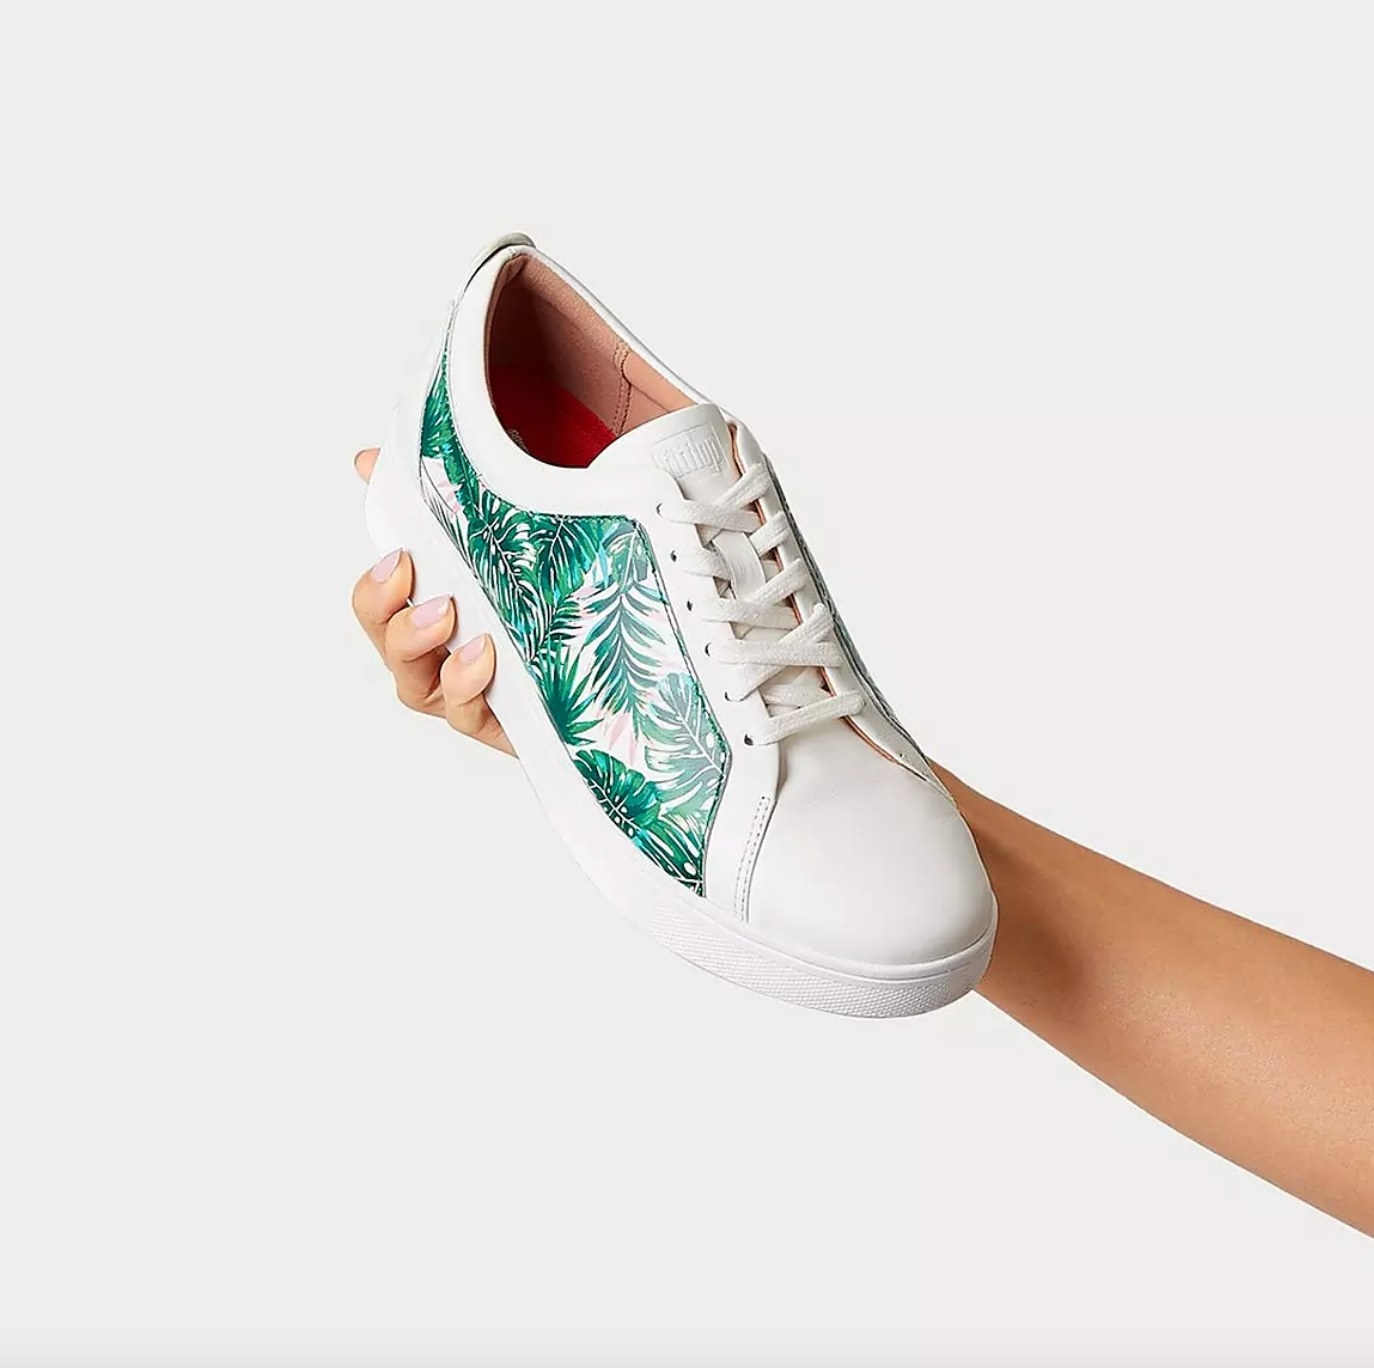 the jungle print leather sneakers being held by a reviewer